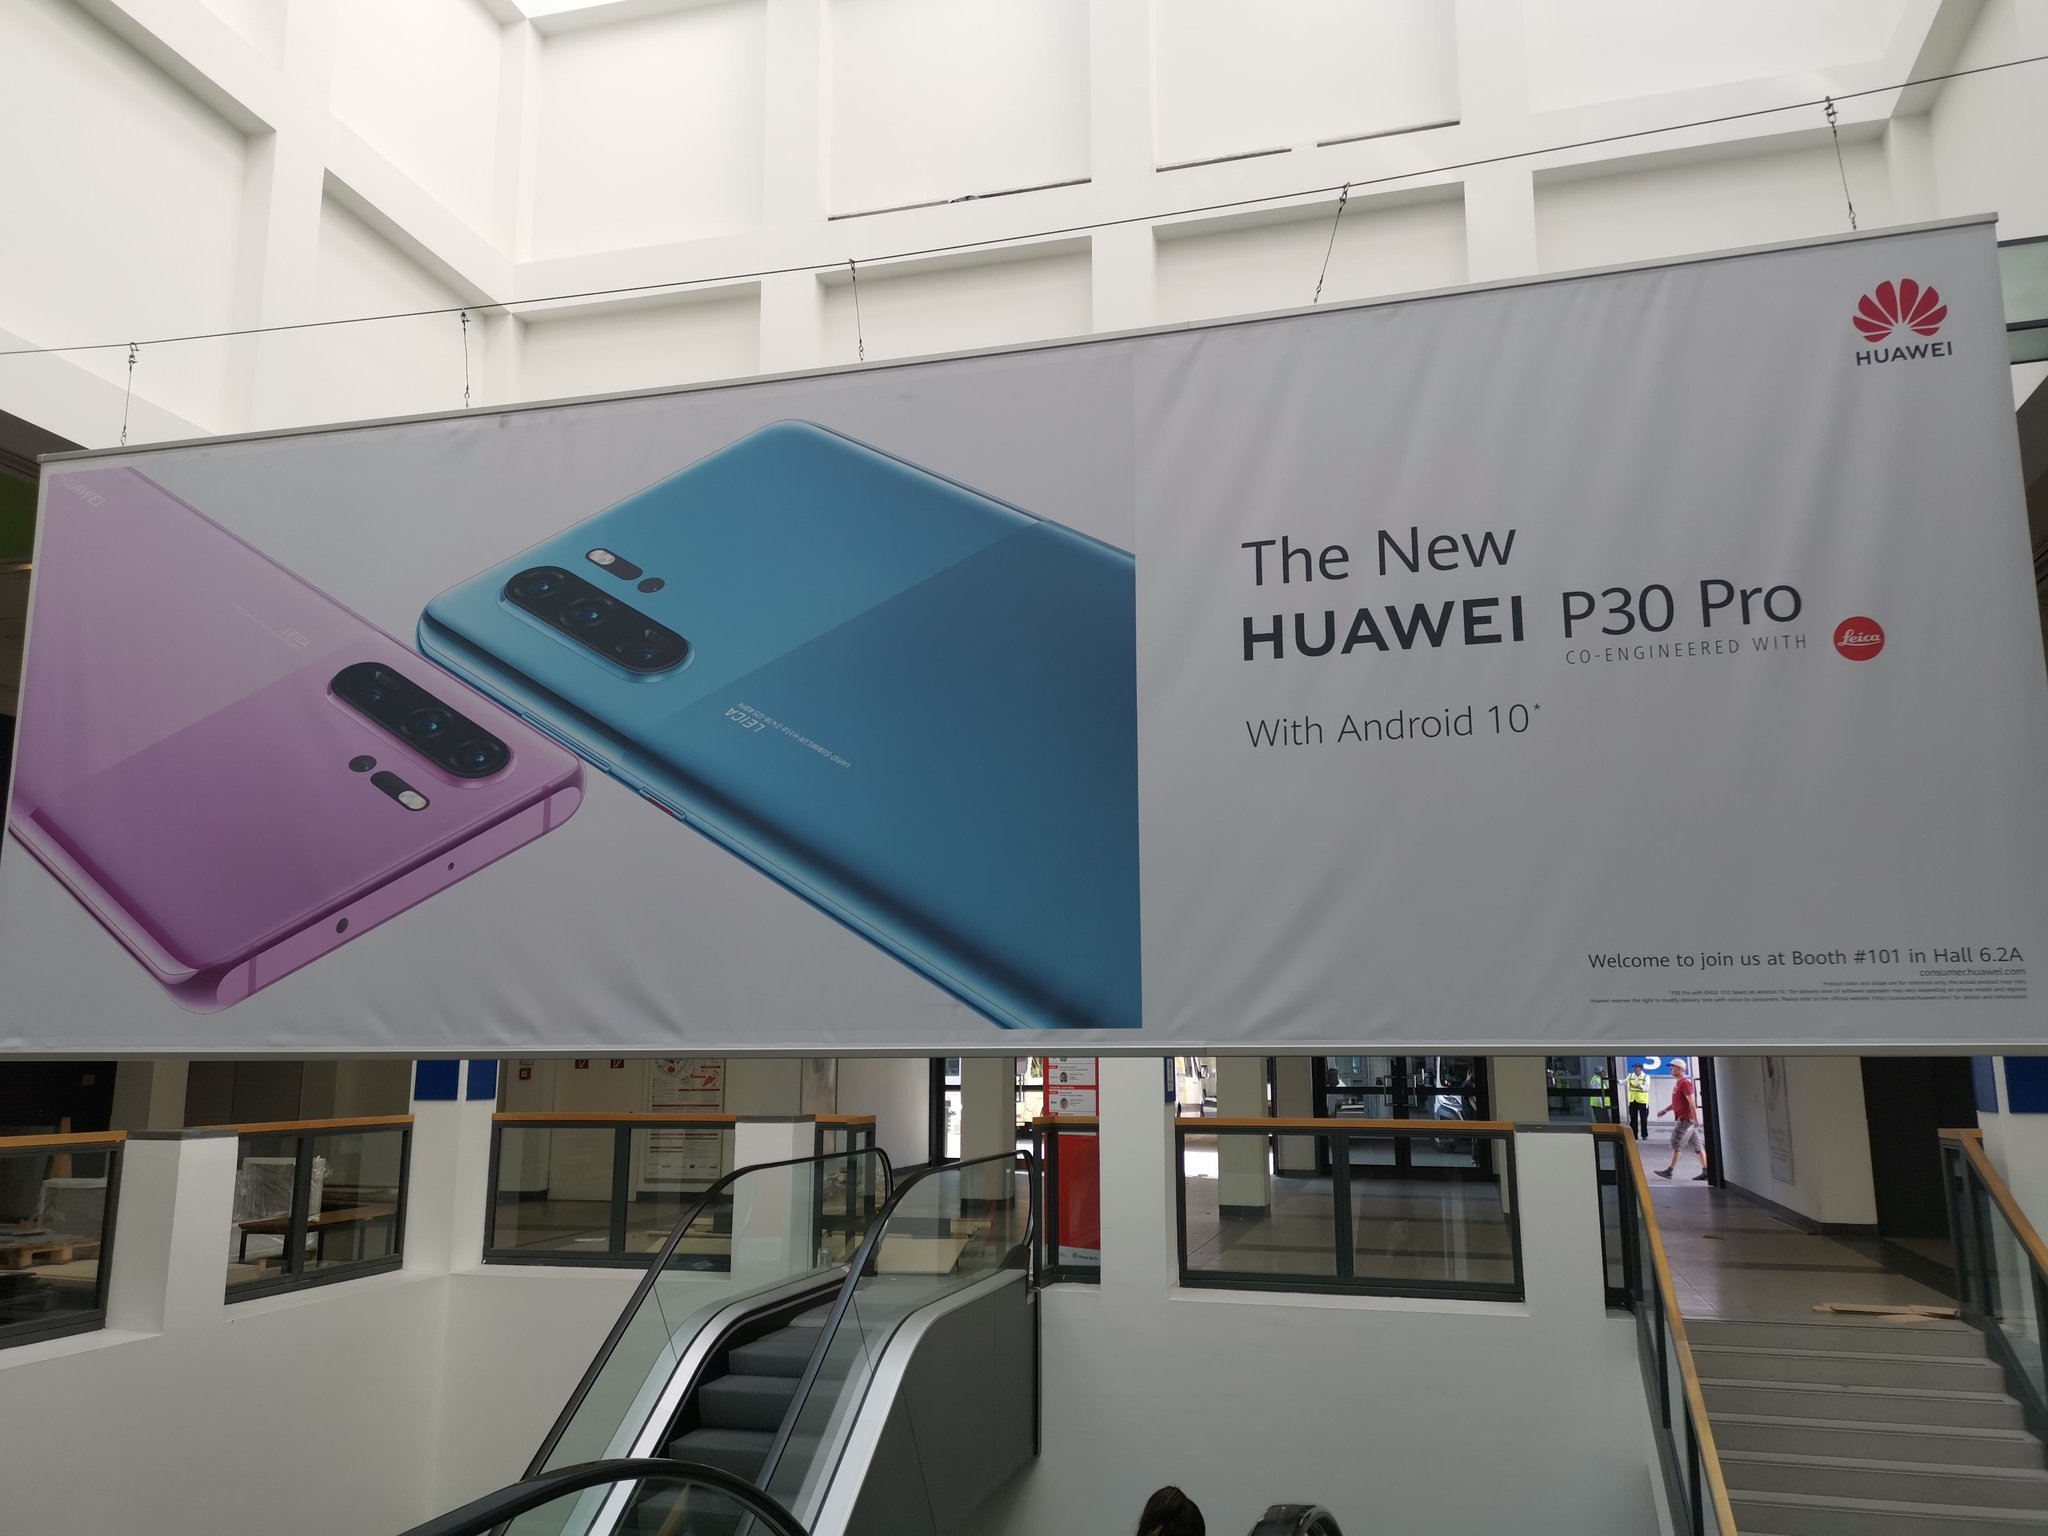 huawei p30 pro android 10 teaser banner